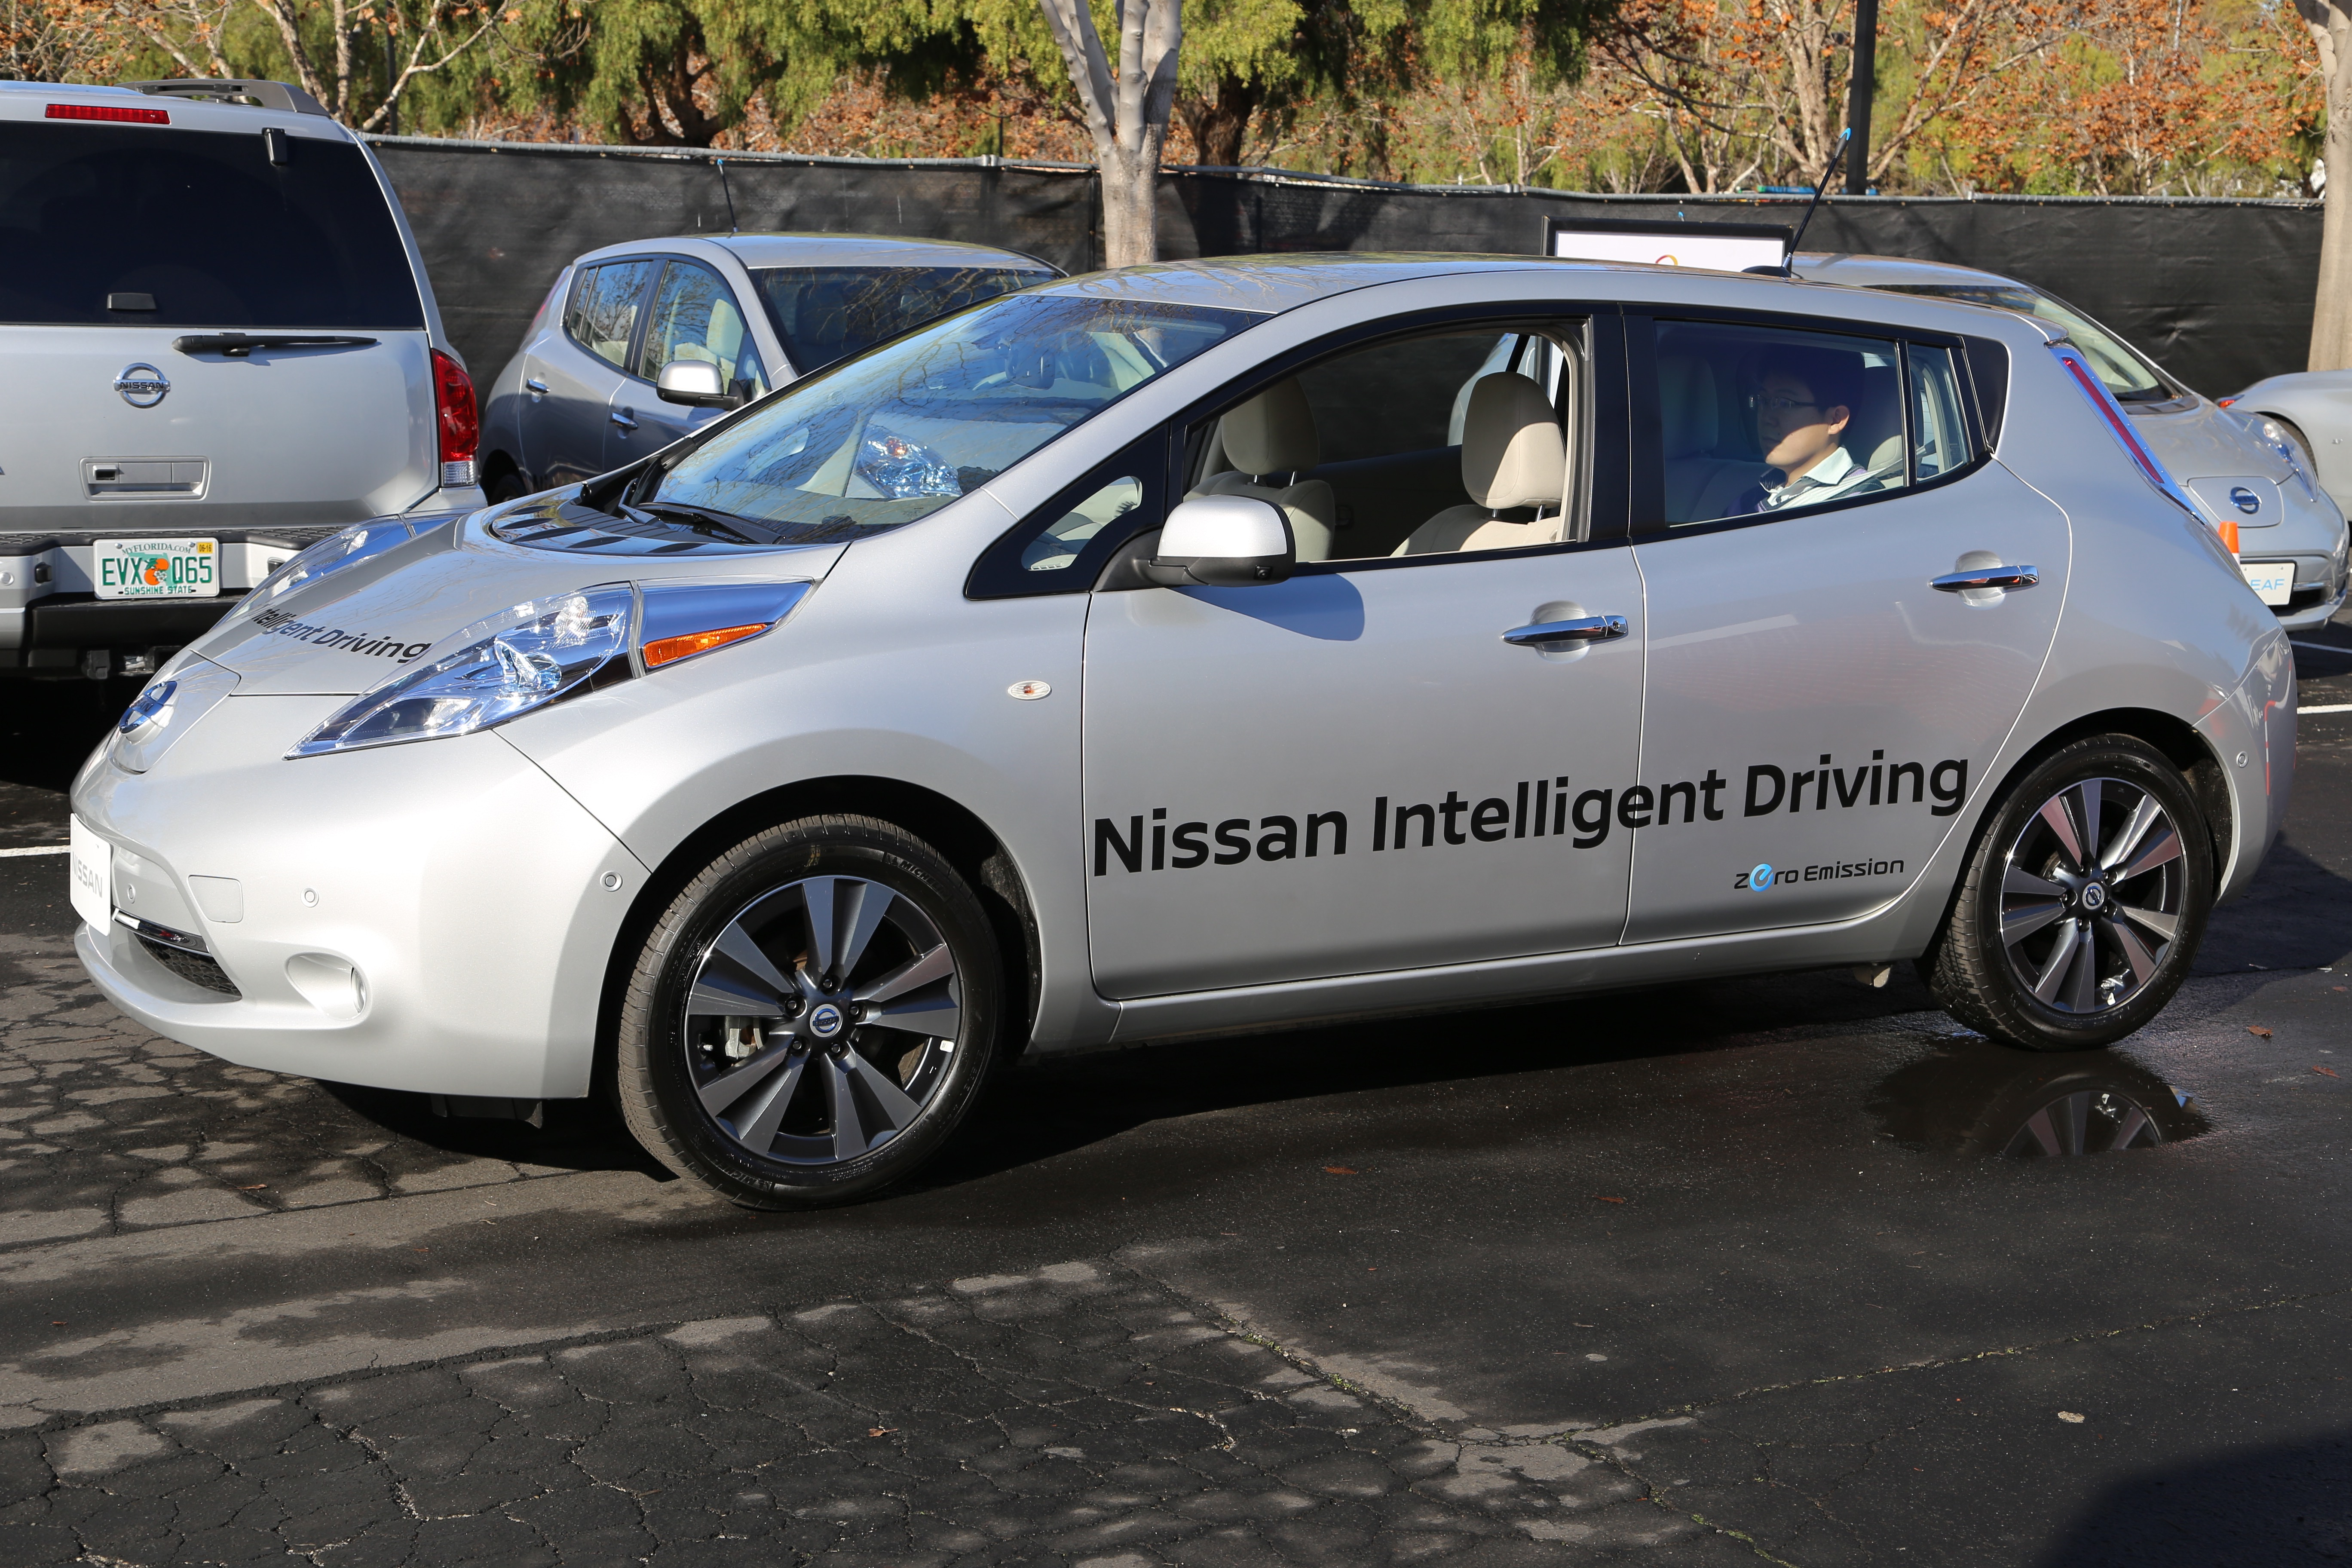 Nissan showed off an electric LEAF that can self-park itself at its Silicon Valley research center in January 2016.